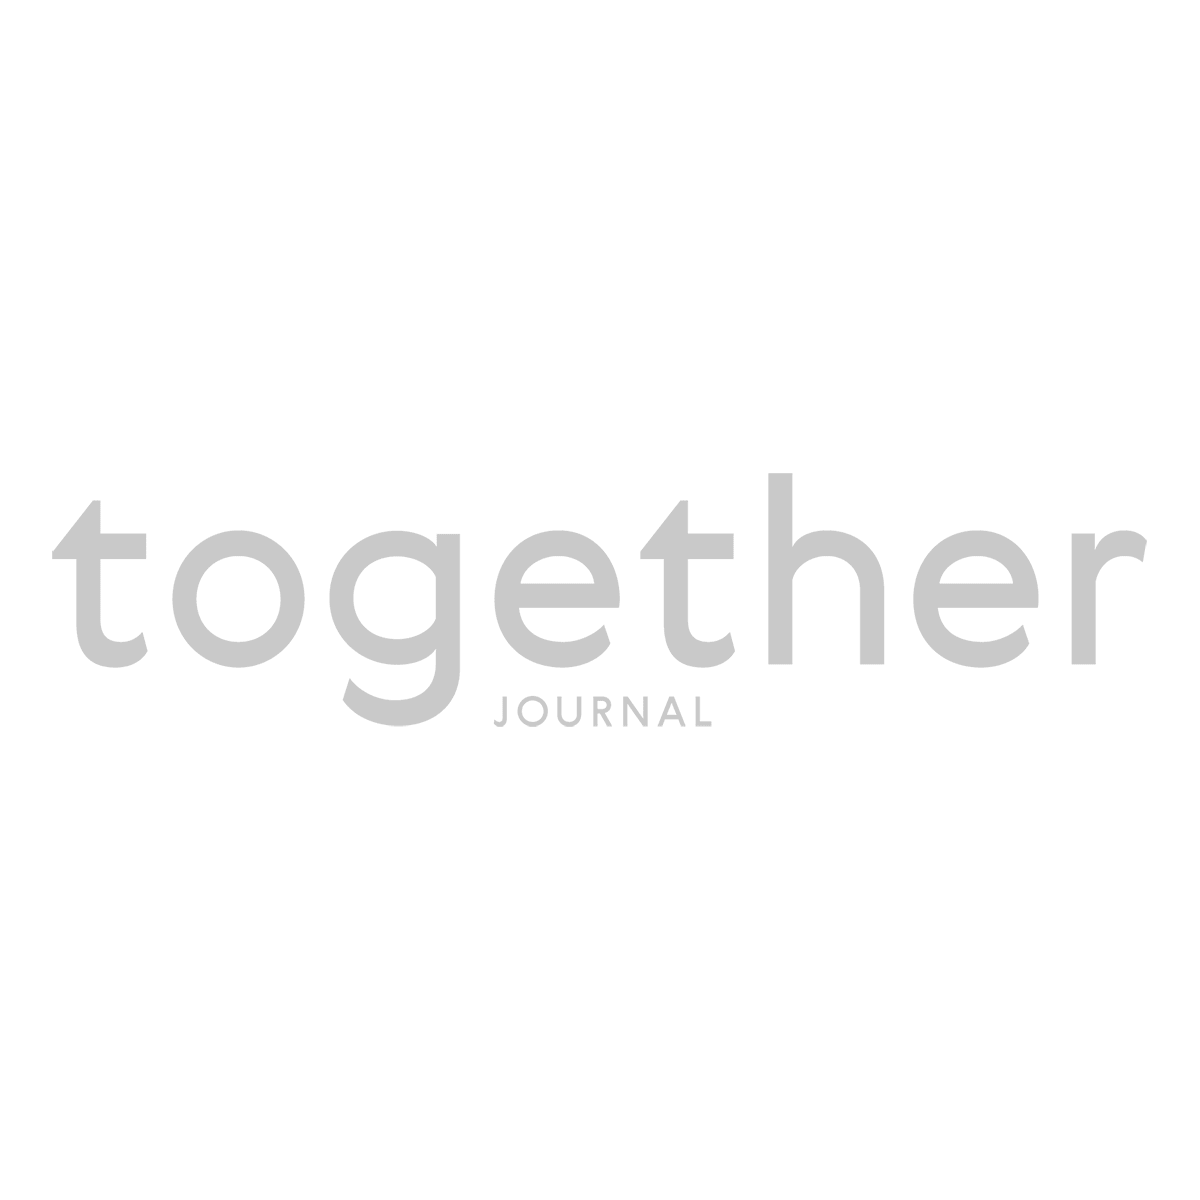 Together Journal Logo